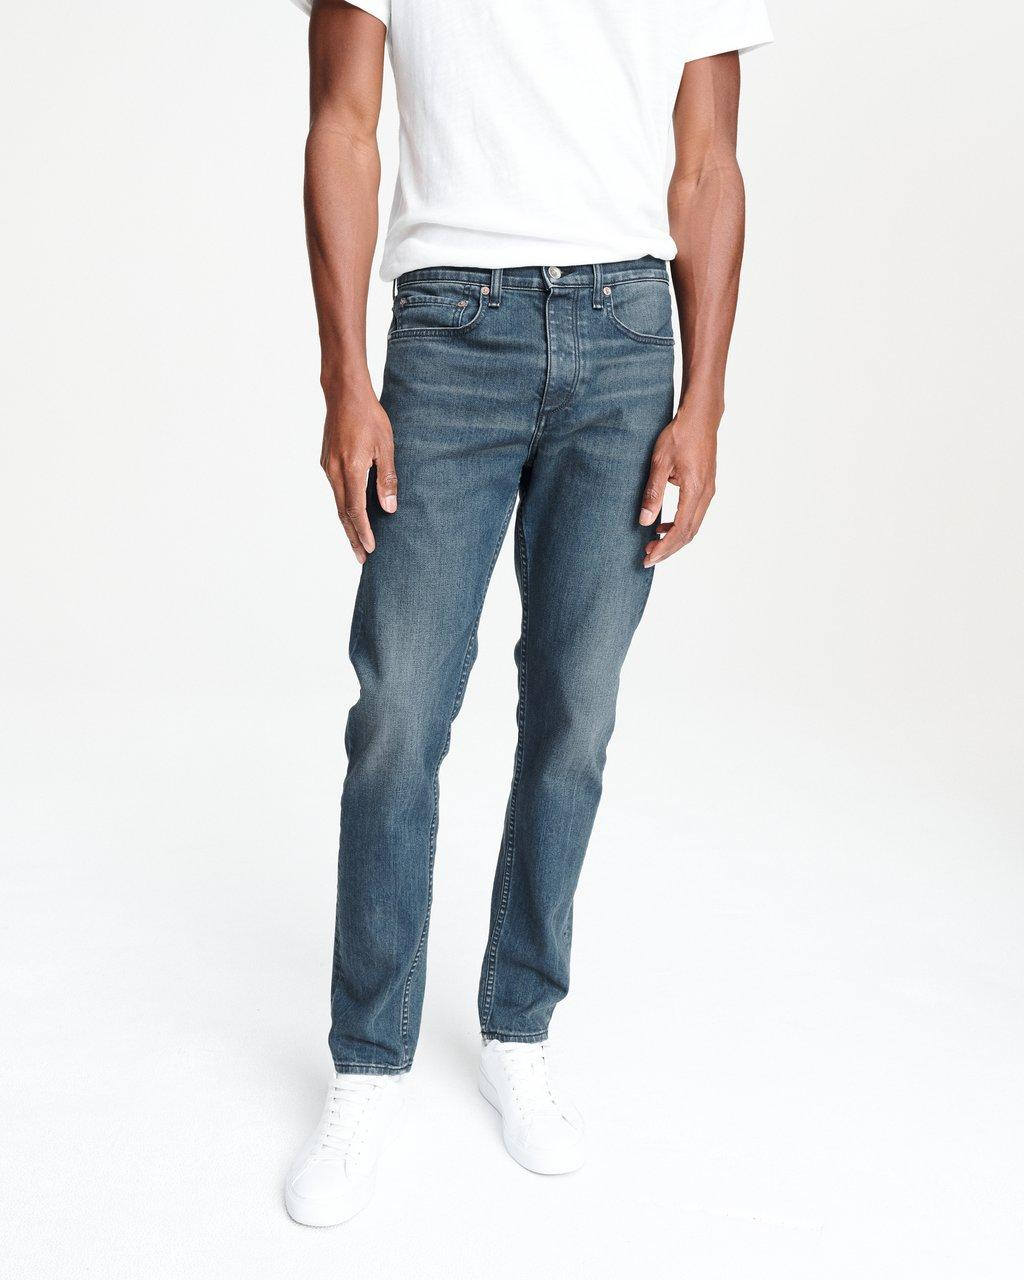 FIT 2 IN ROCK CITY - 30 INCH INSEAM AVAILABLE